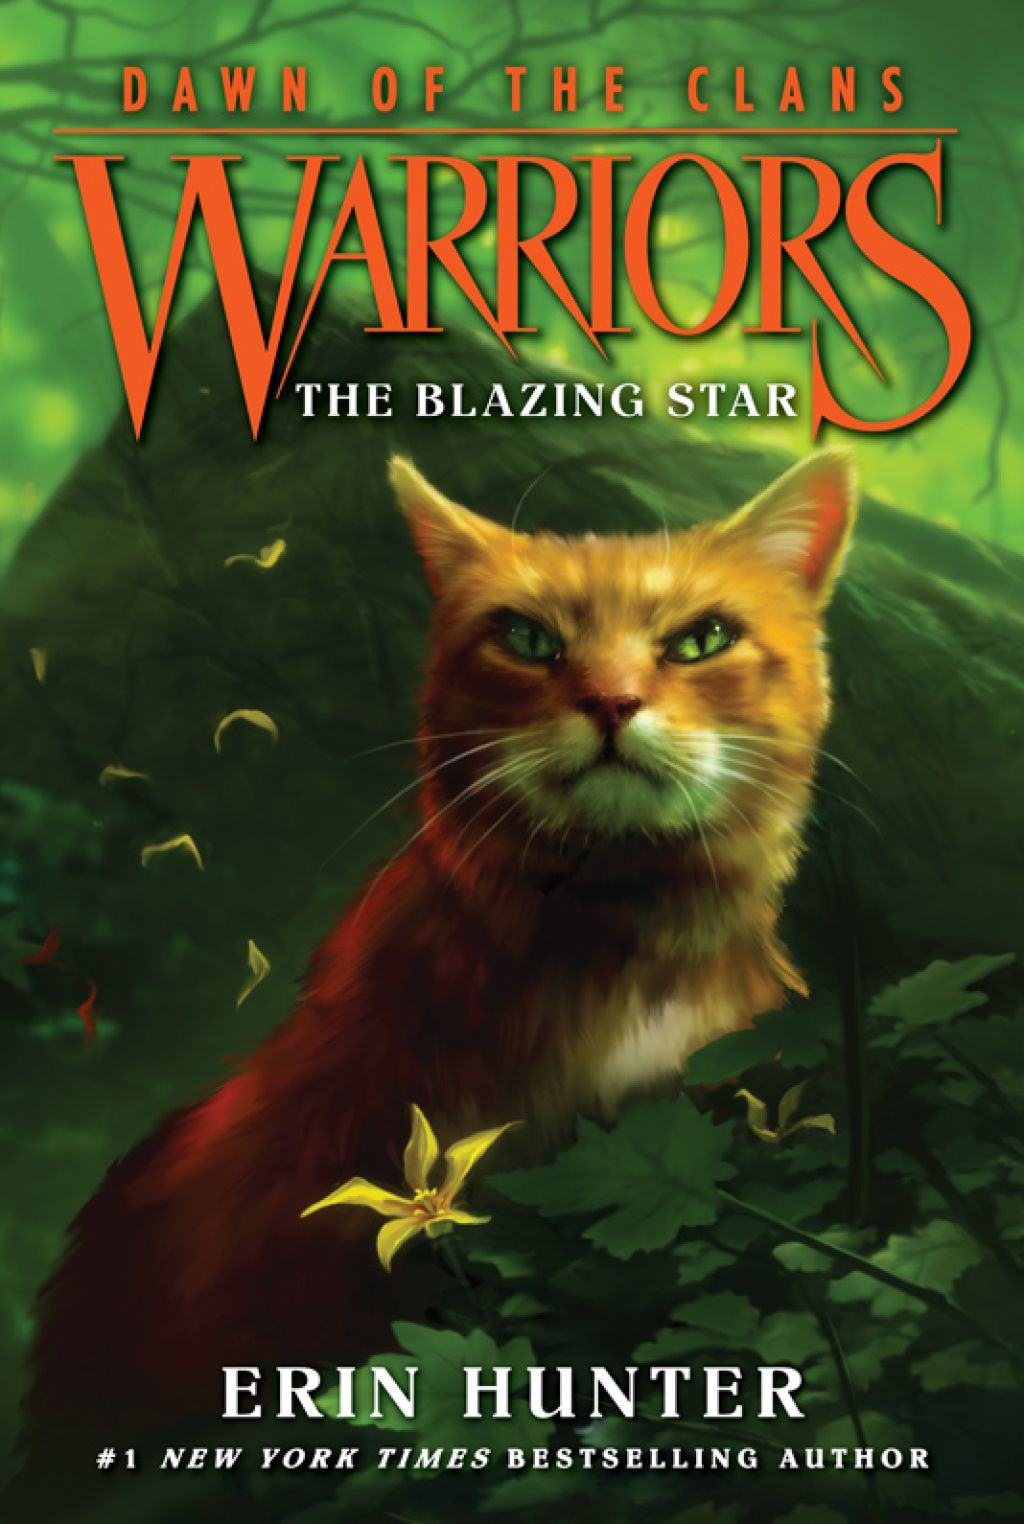 Warrior cats books image by Lali Haven on WARRIORS